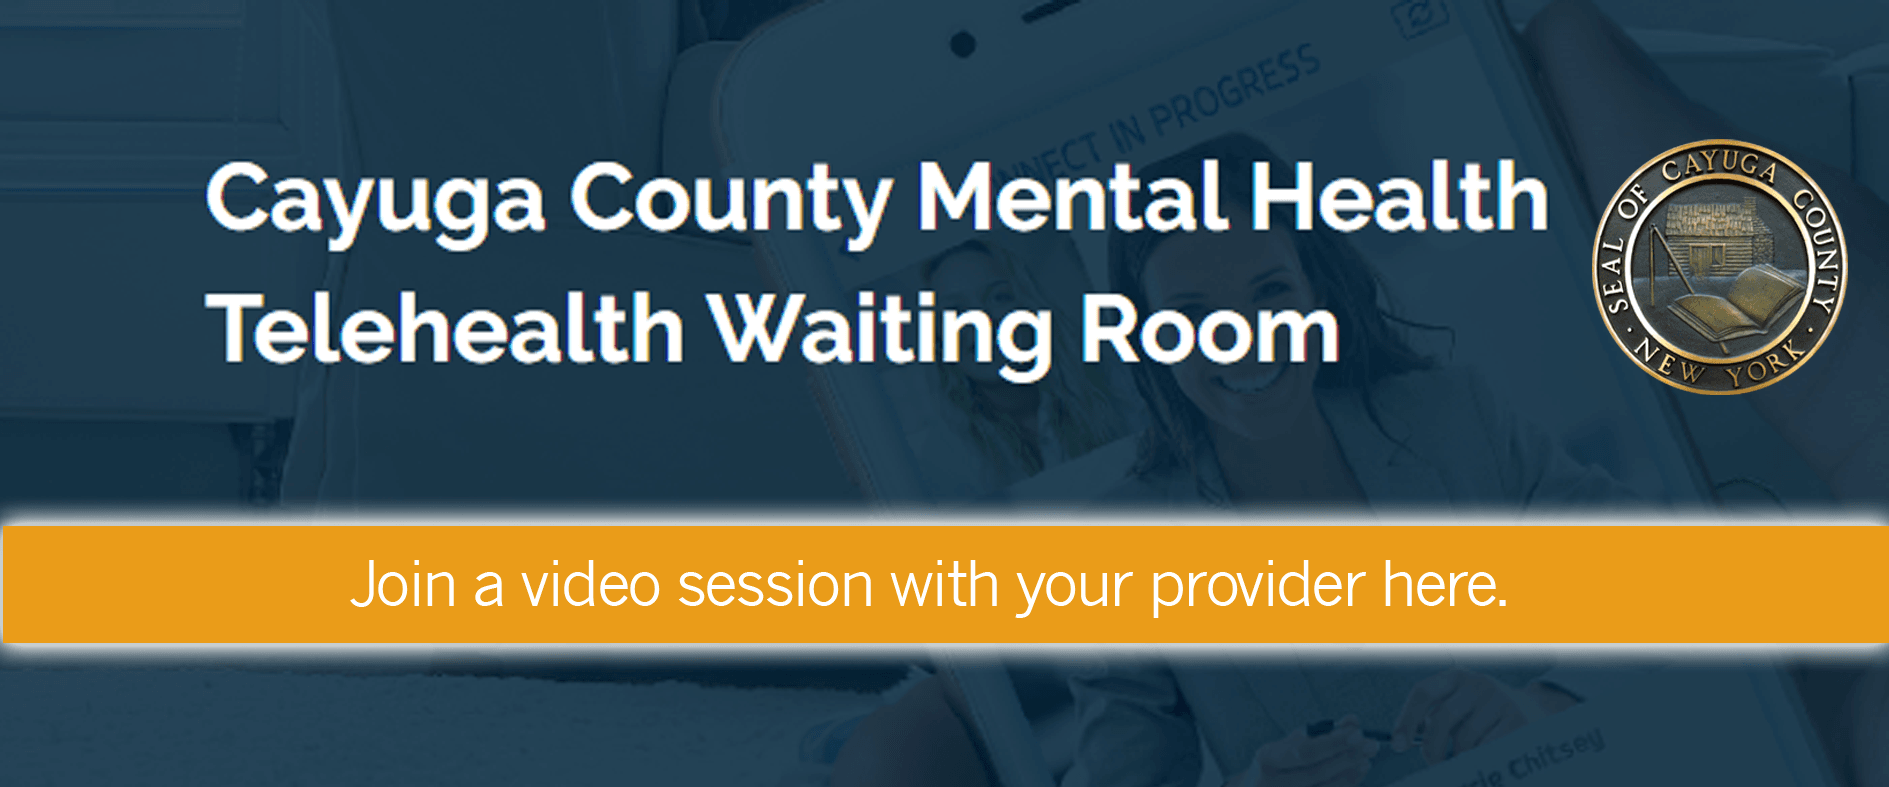 Join your telehealth video session